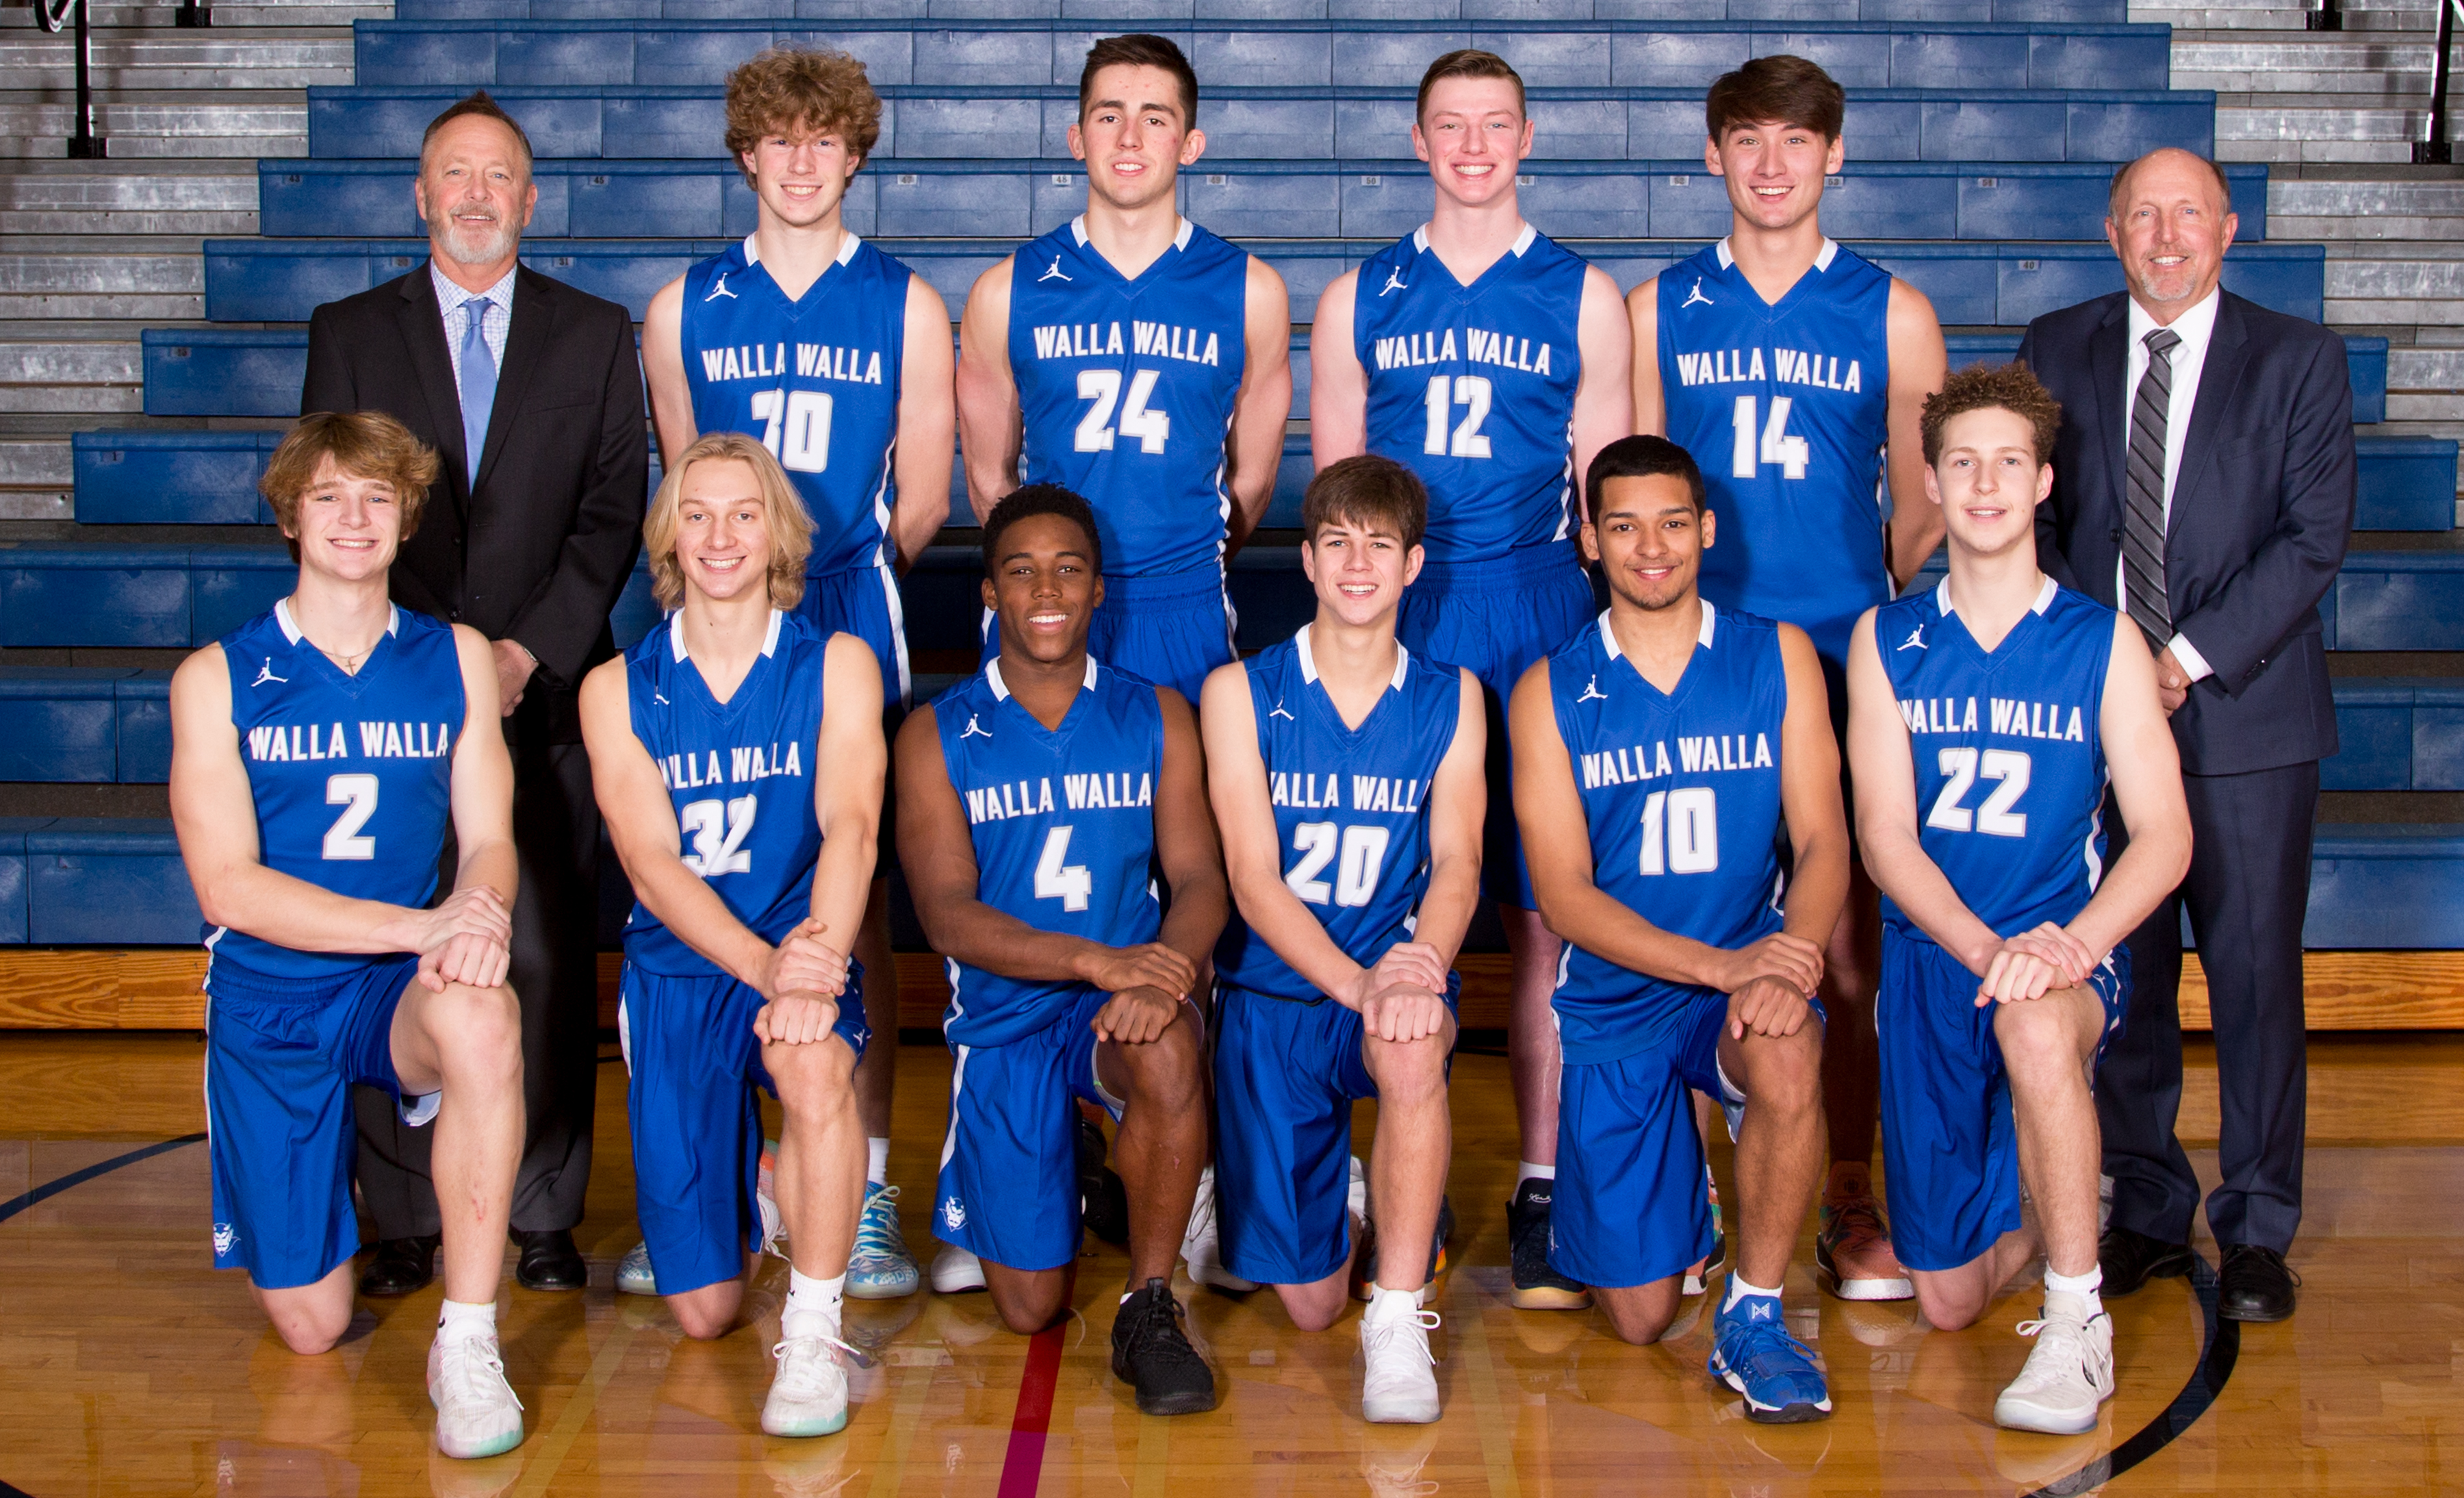 images/athletics/Boys_Basketball/2018-2019_Boys_Varsity.jpg